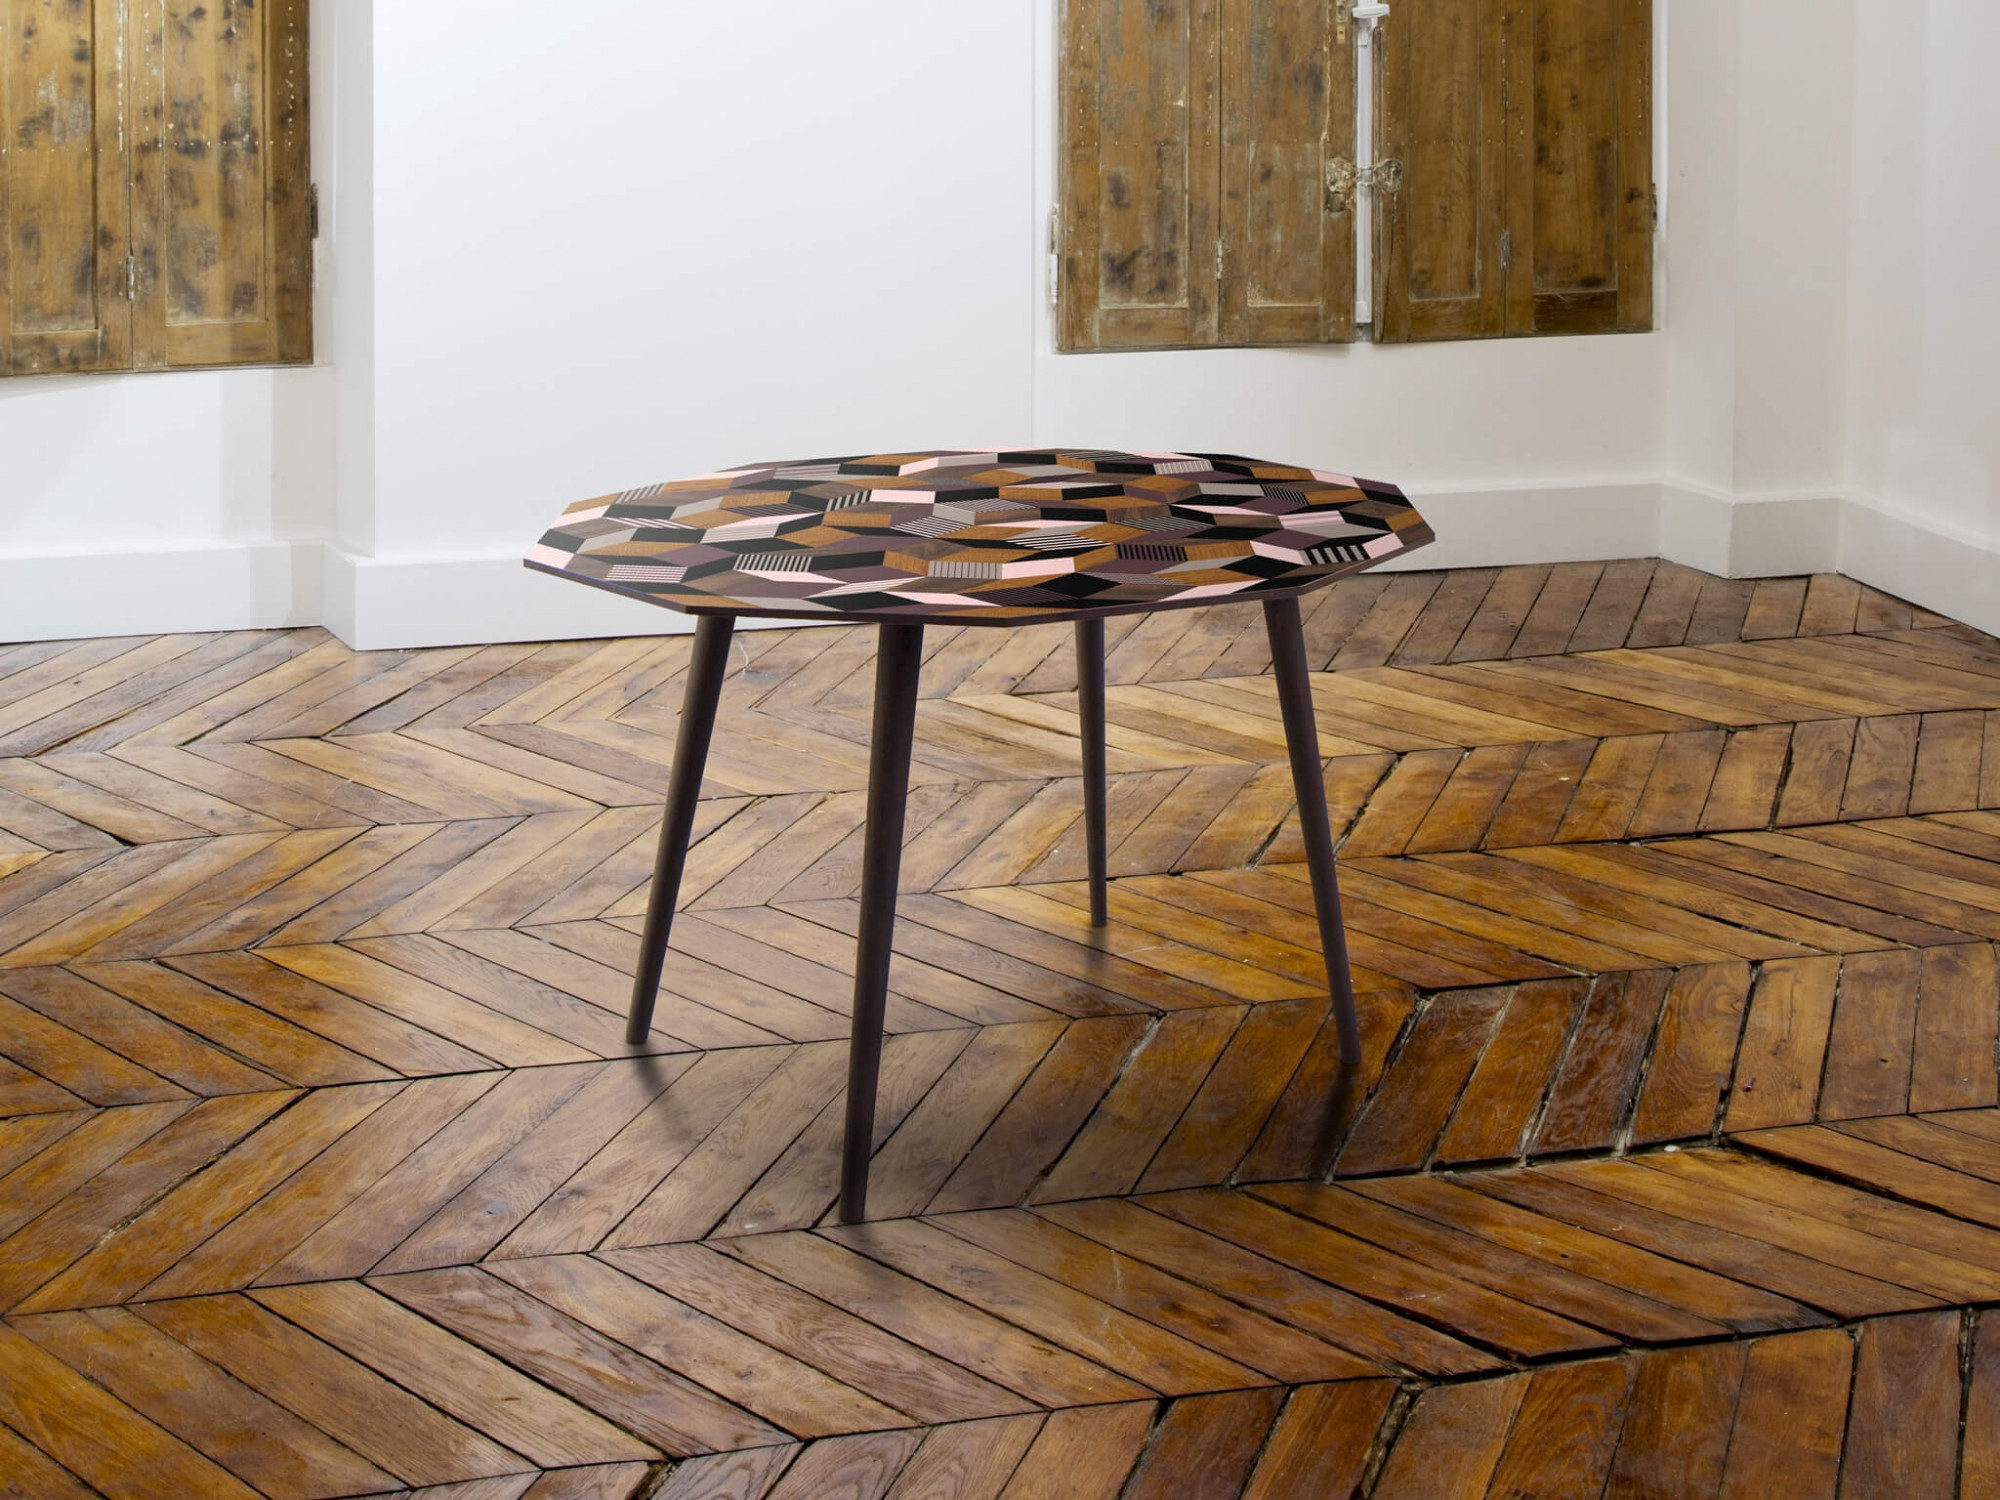 Table à manger ronde Penrose Fancy Wood pour Made in design, bois et couleur. Design IchetKar édition Bazartherapy